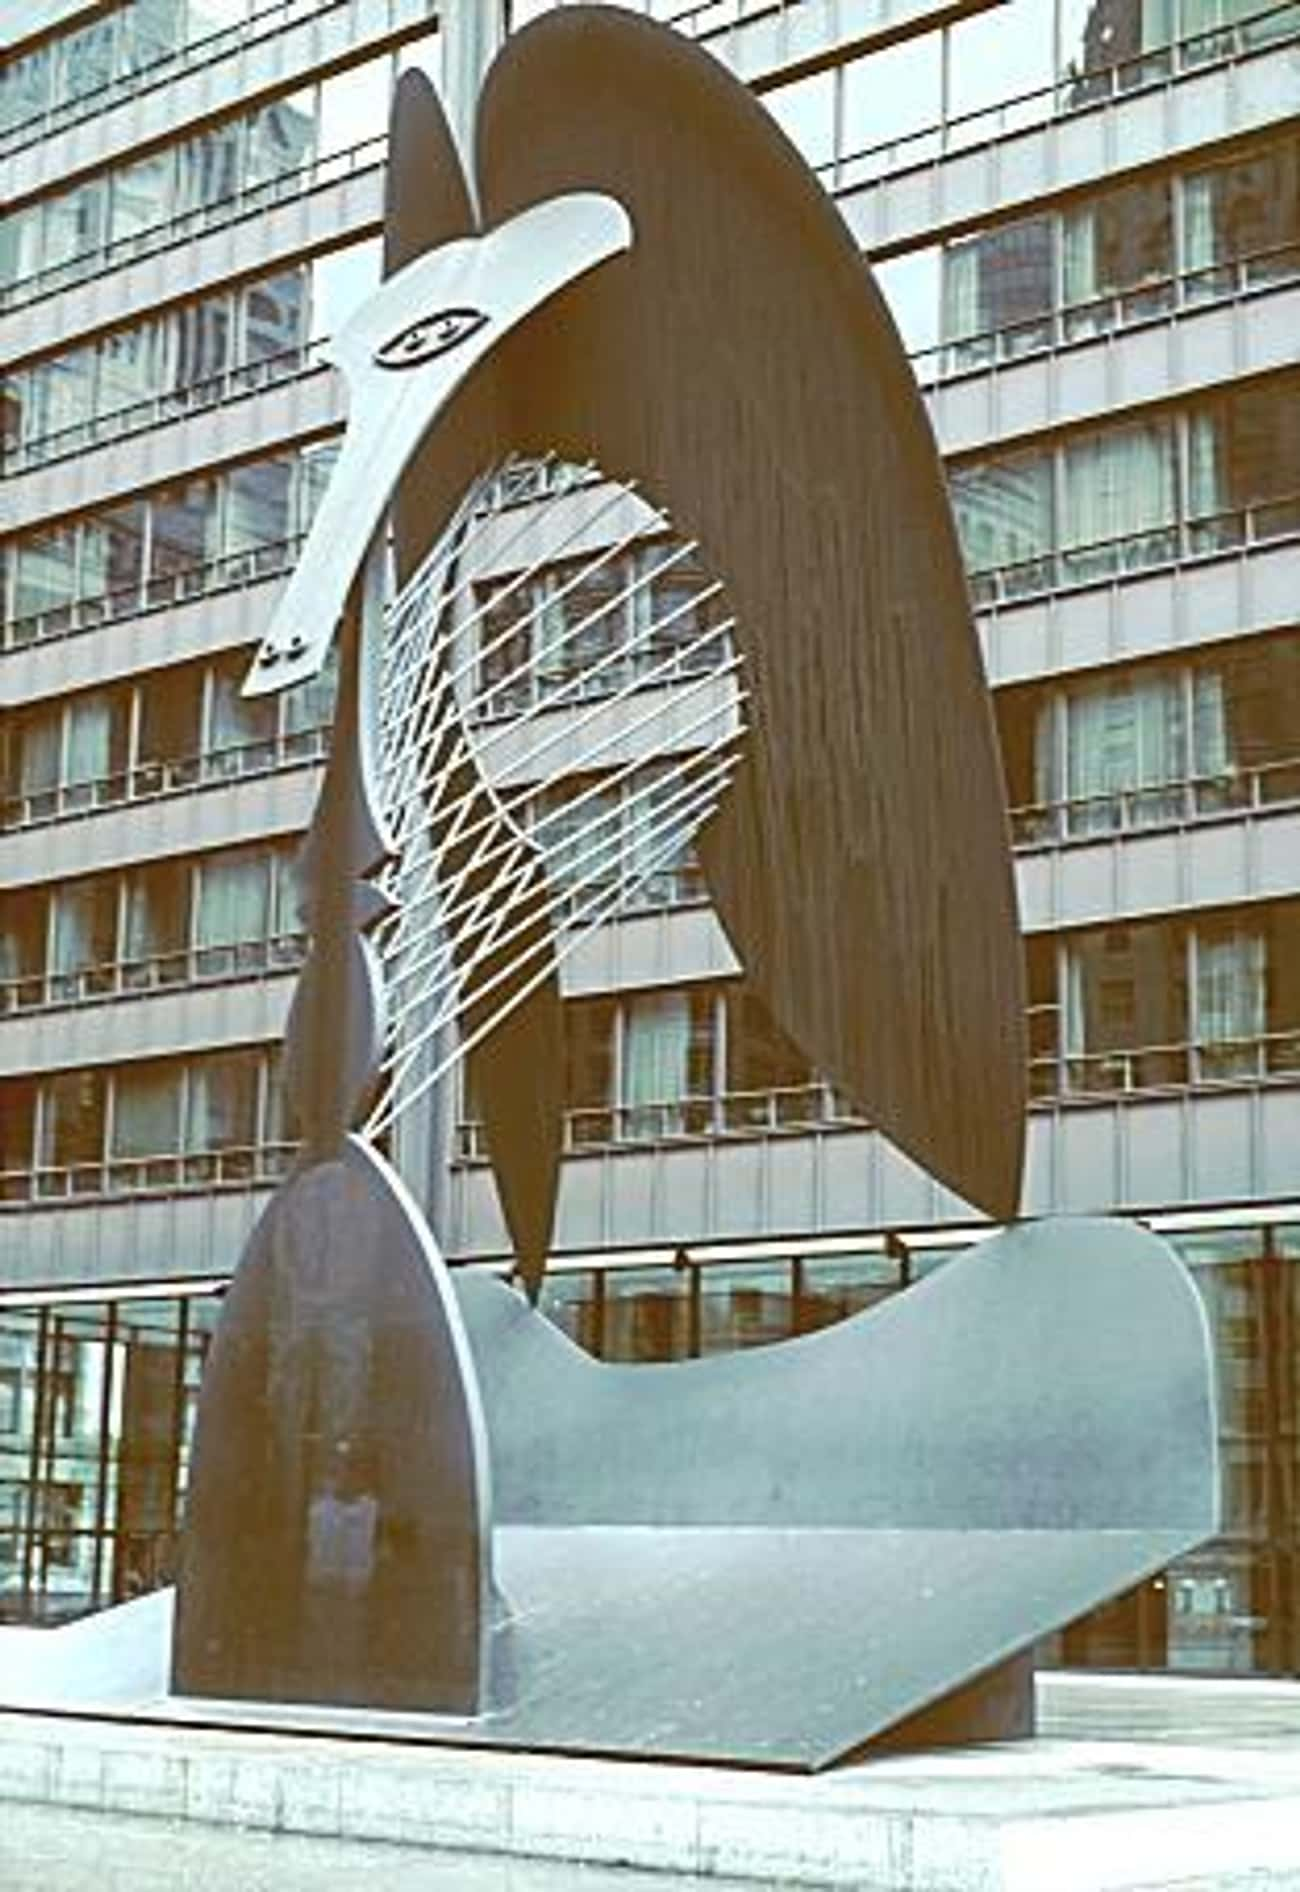 Chicago Picasso is listed (or ranked) 2 on the list Famous Pablo Picasso Sculptures